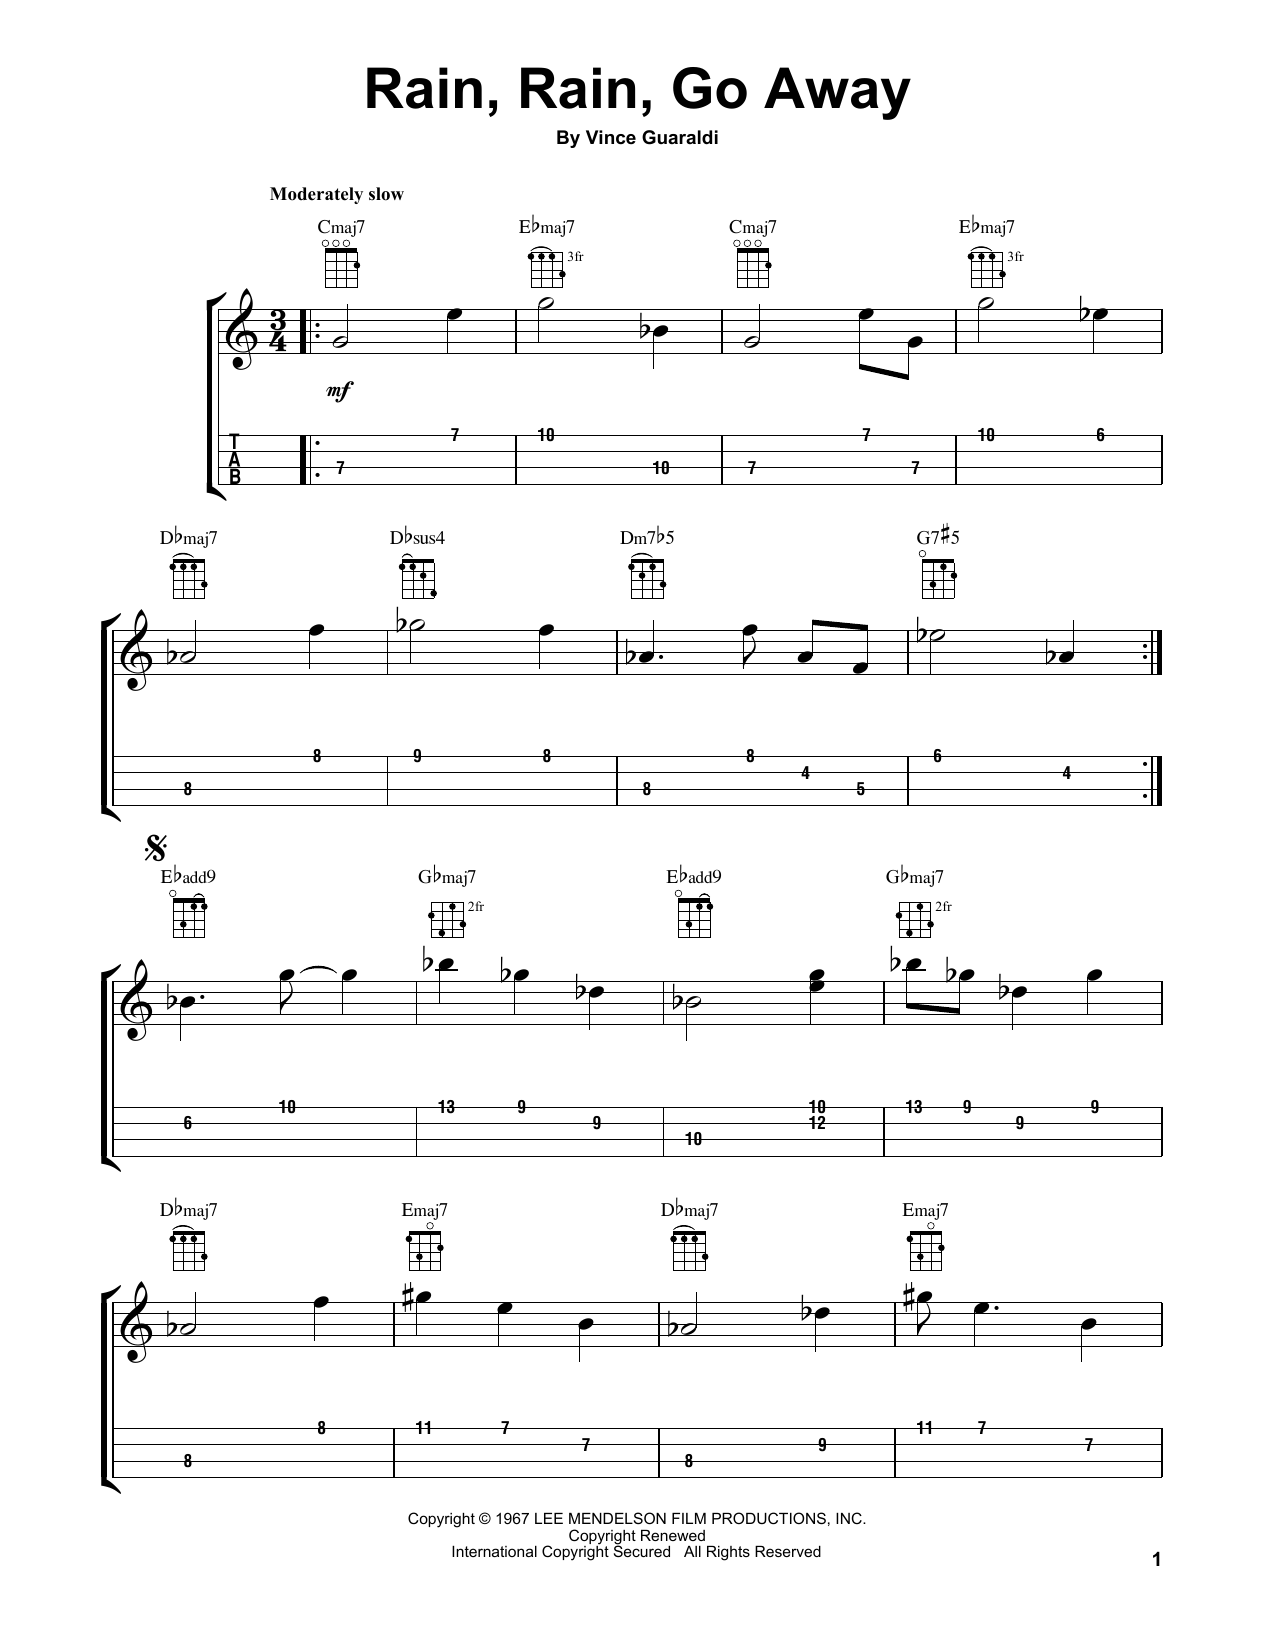 Rain Rain Go Away Sheet Music By Vince Guaraldi Ukulele